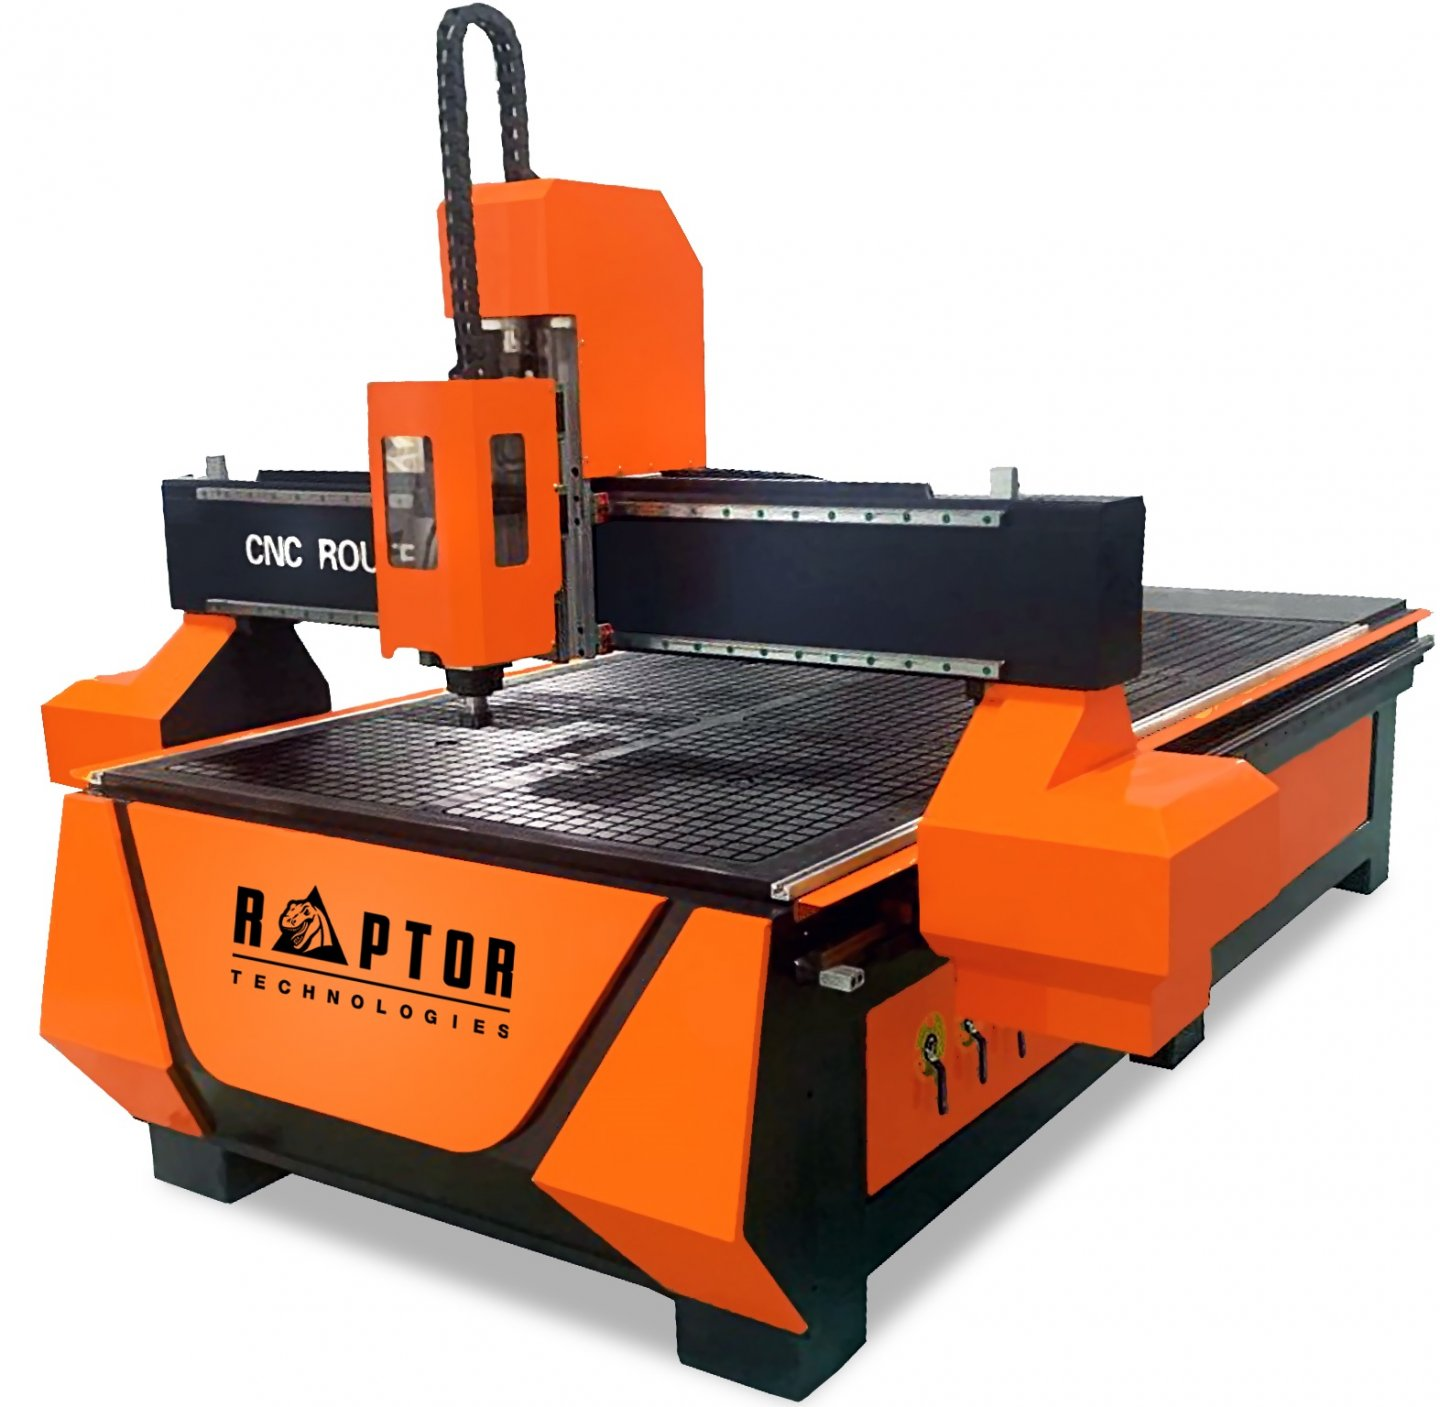 CNC Router Raptor Milling machine